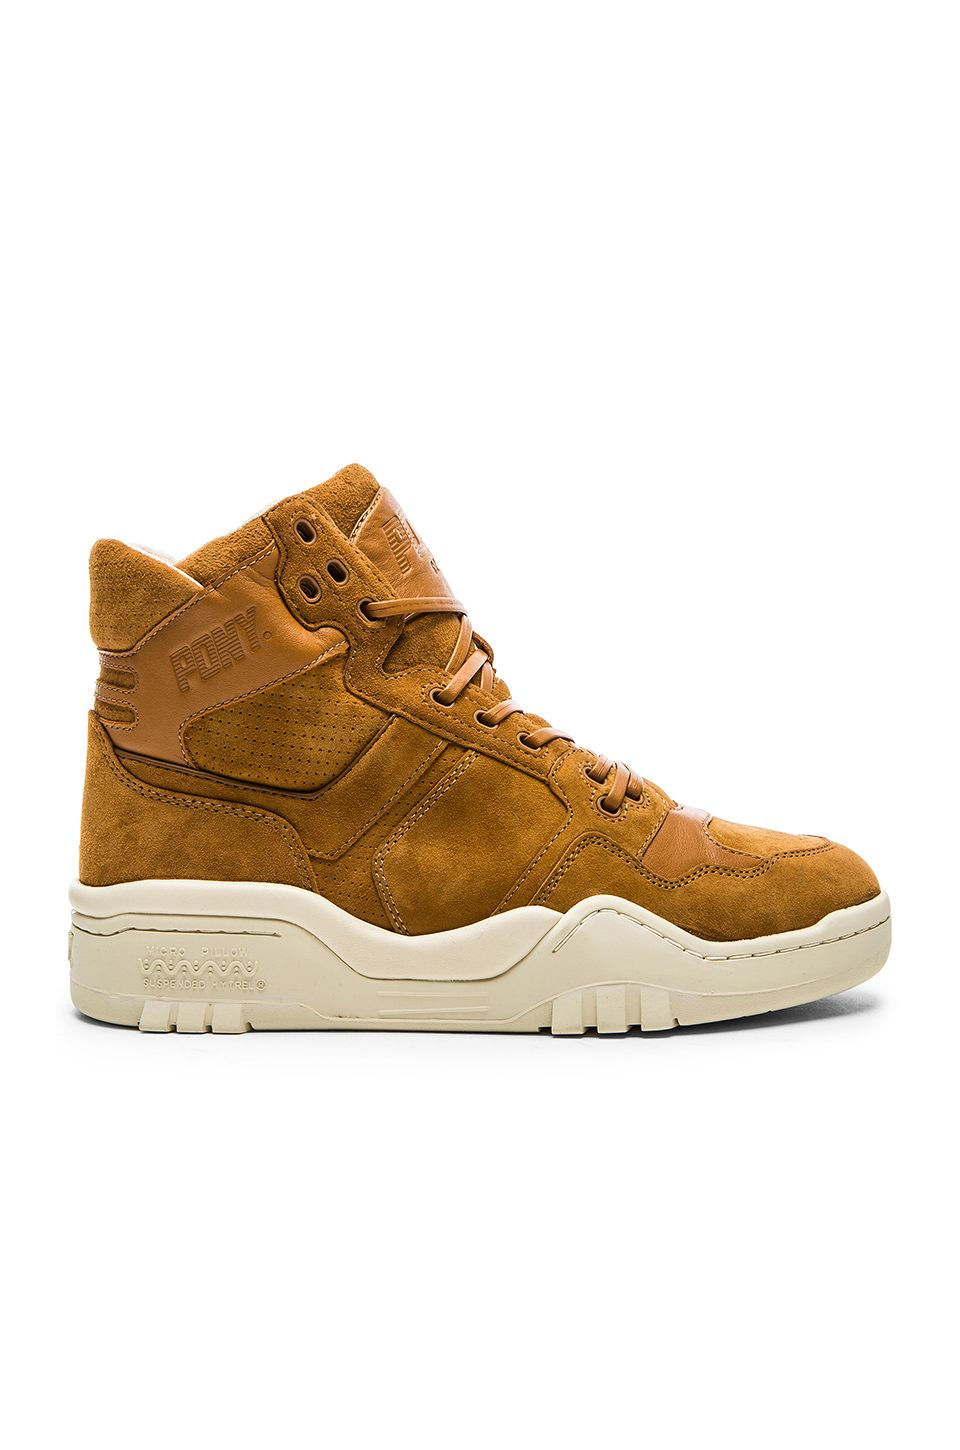 Sneakers Nubuck Product Of Et Shoes Sneakers New M110 Shoe York nfgnwSIqF